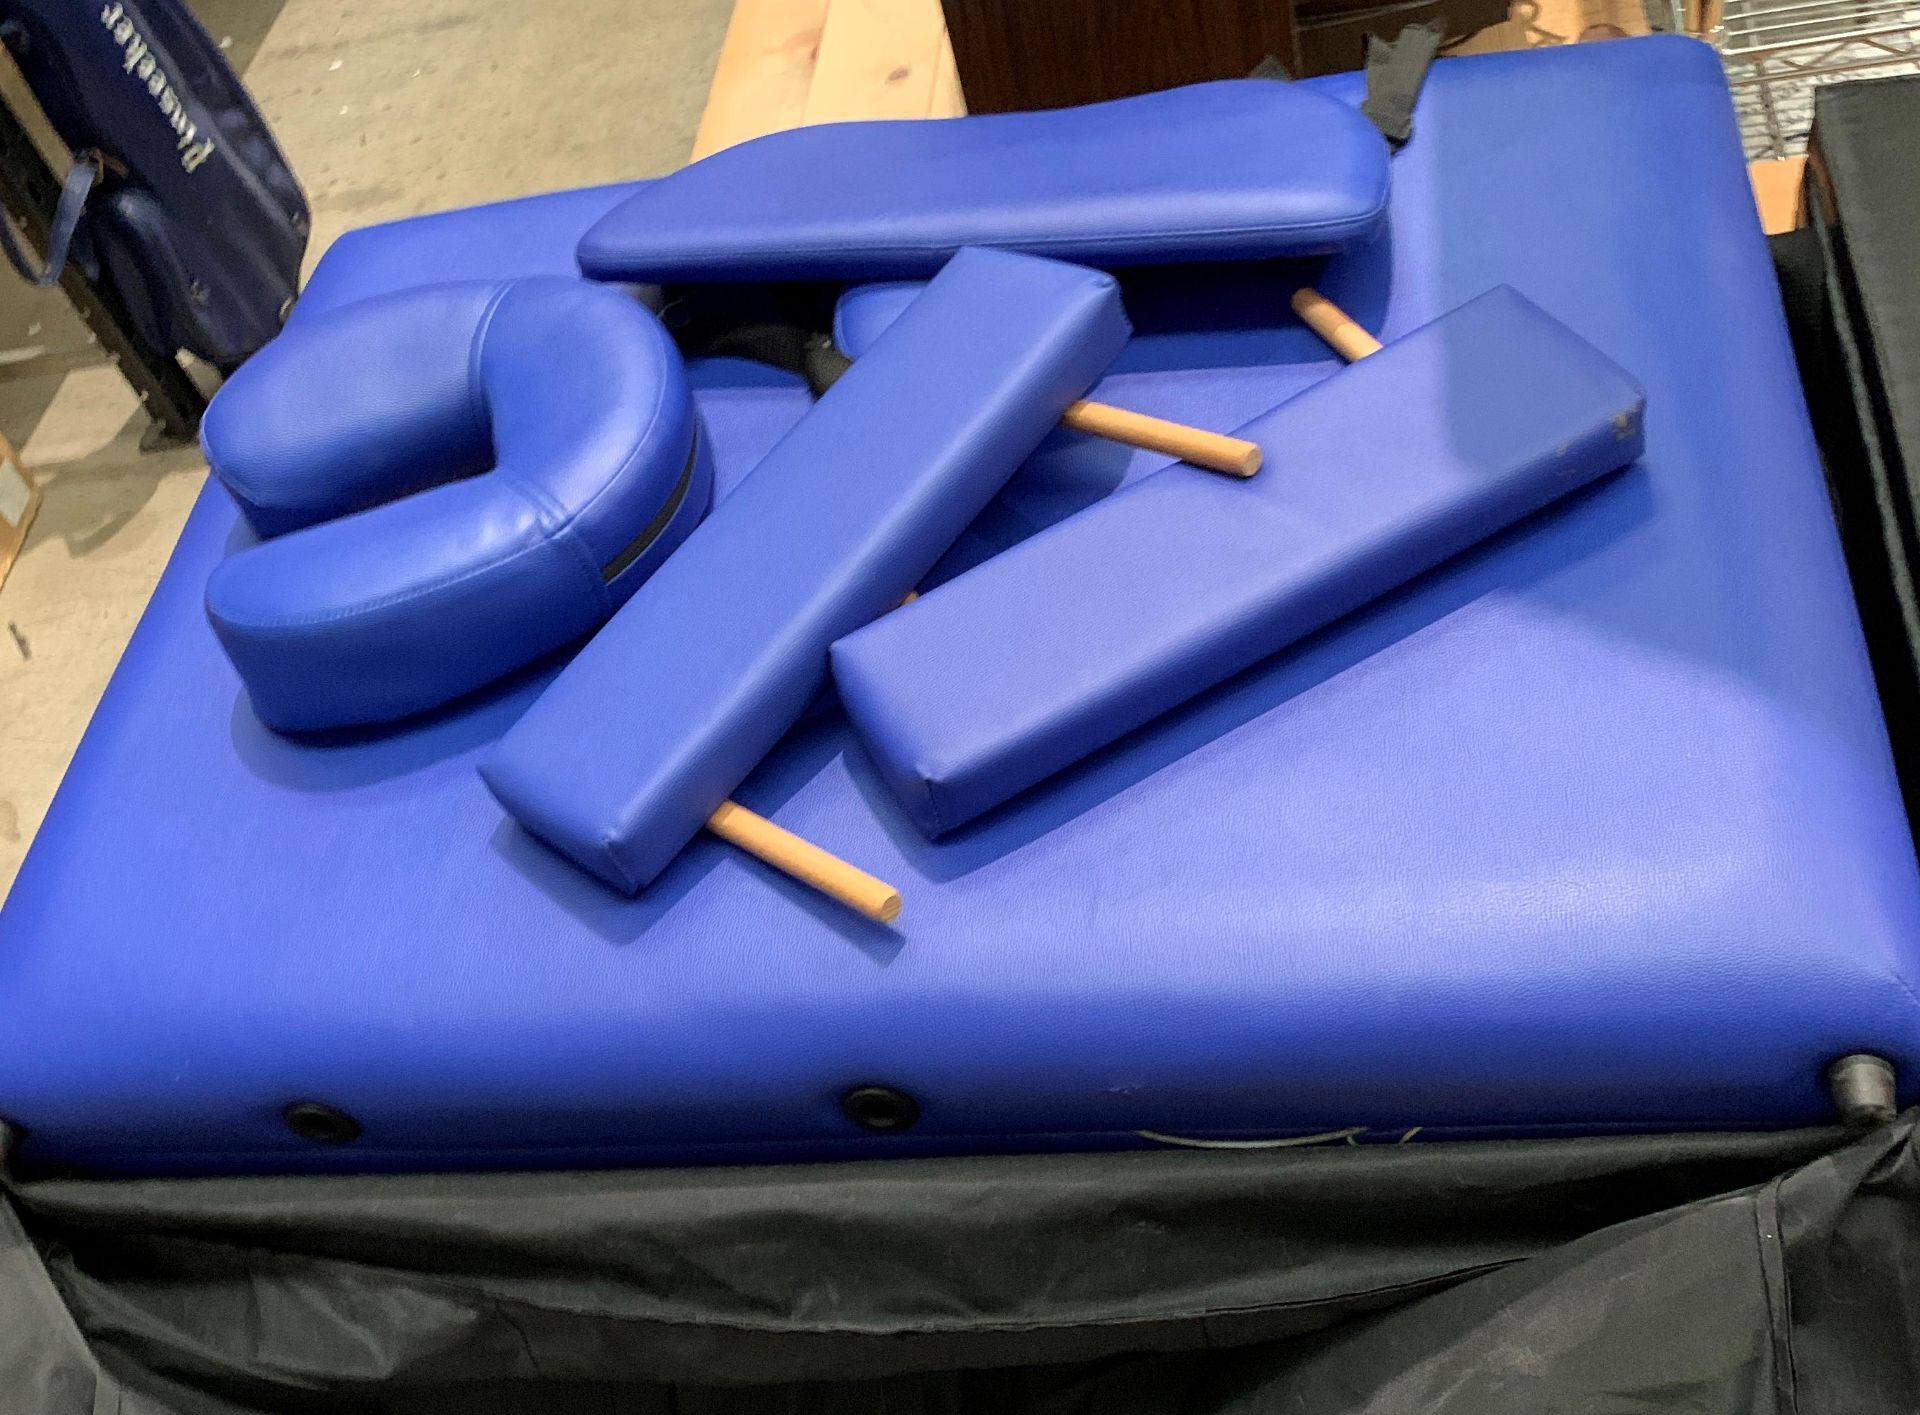 A Healthline Massage Products folding massage bench upholstered in blue PVC complete with carry bag, - Image 2 of 8